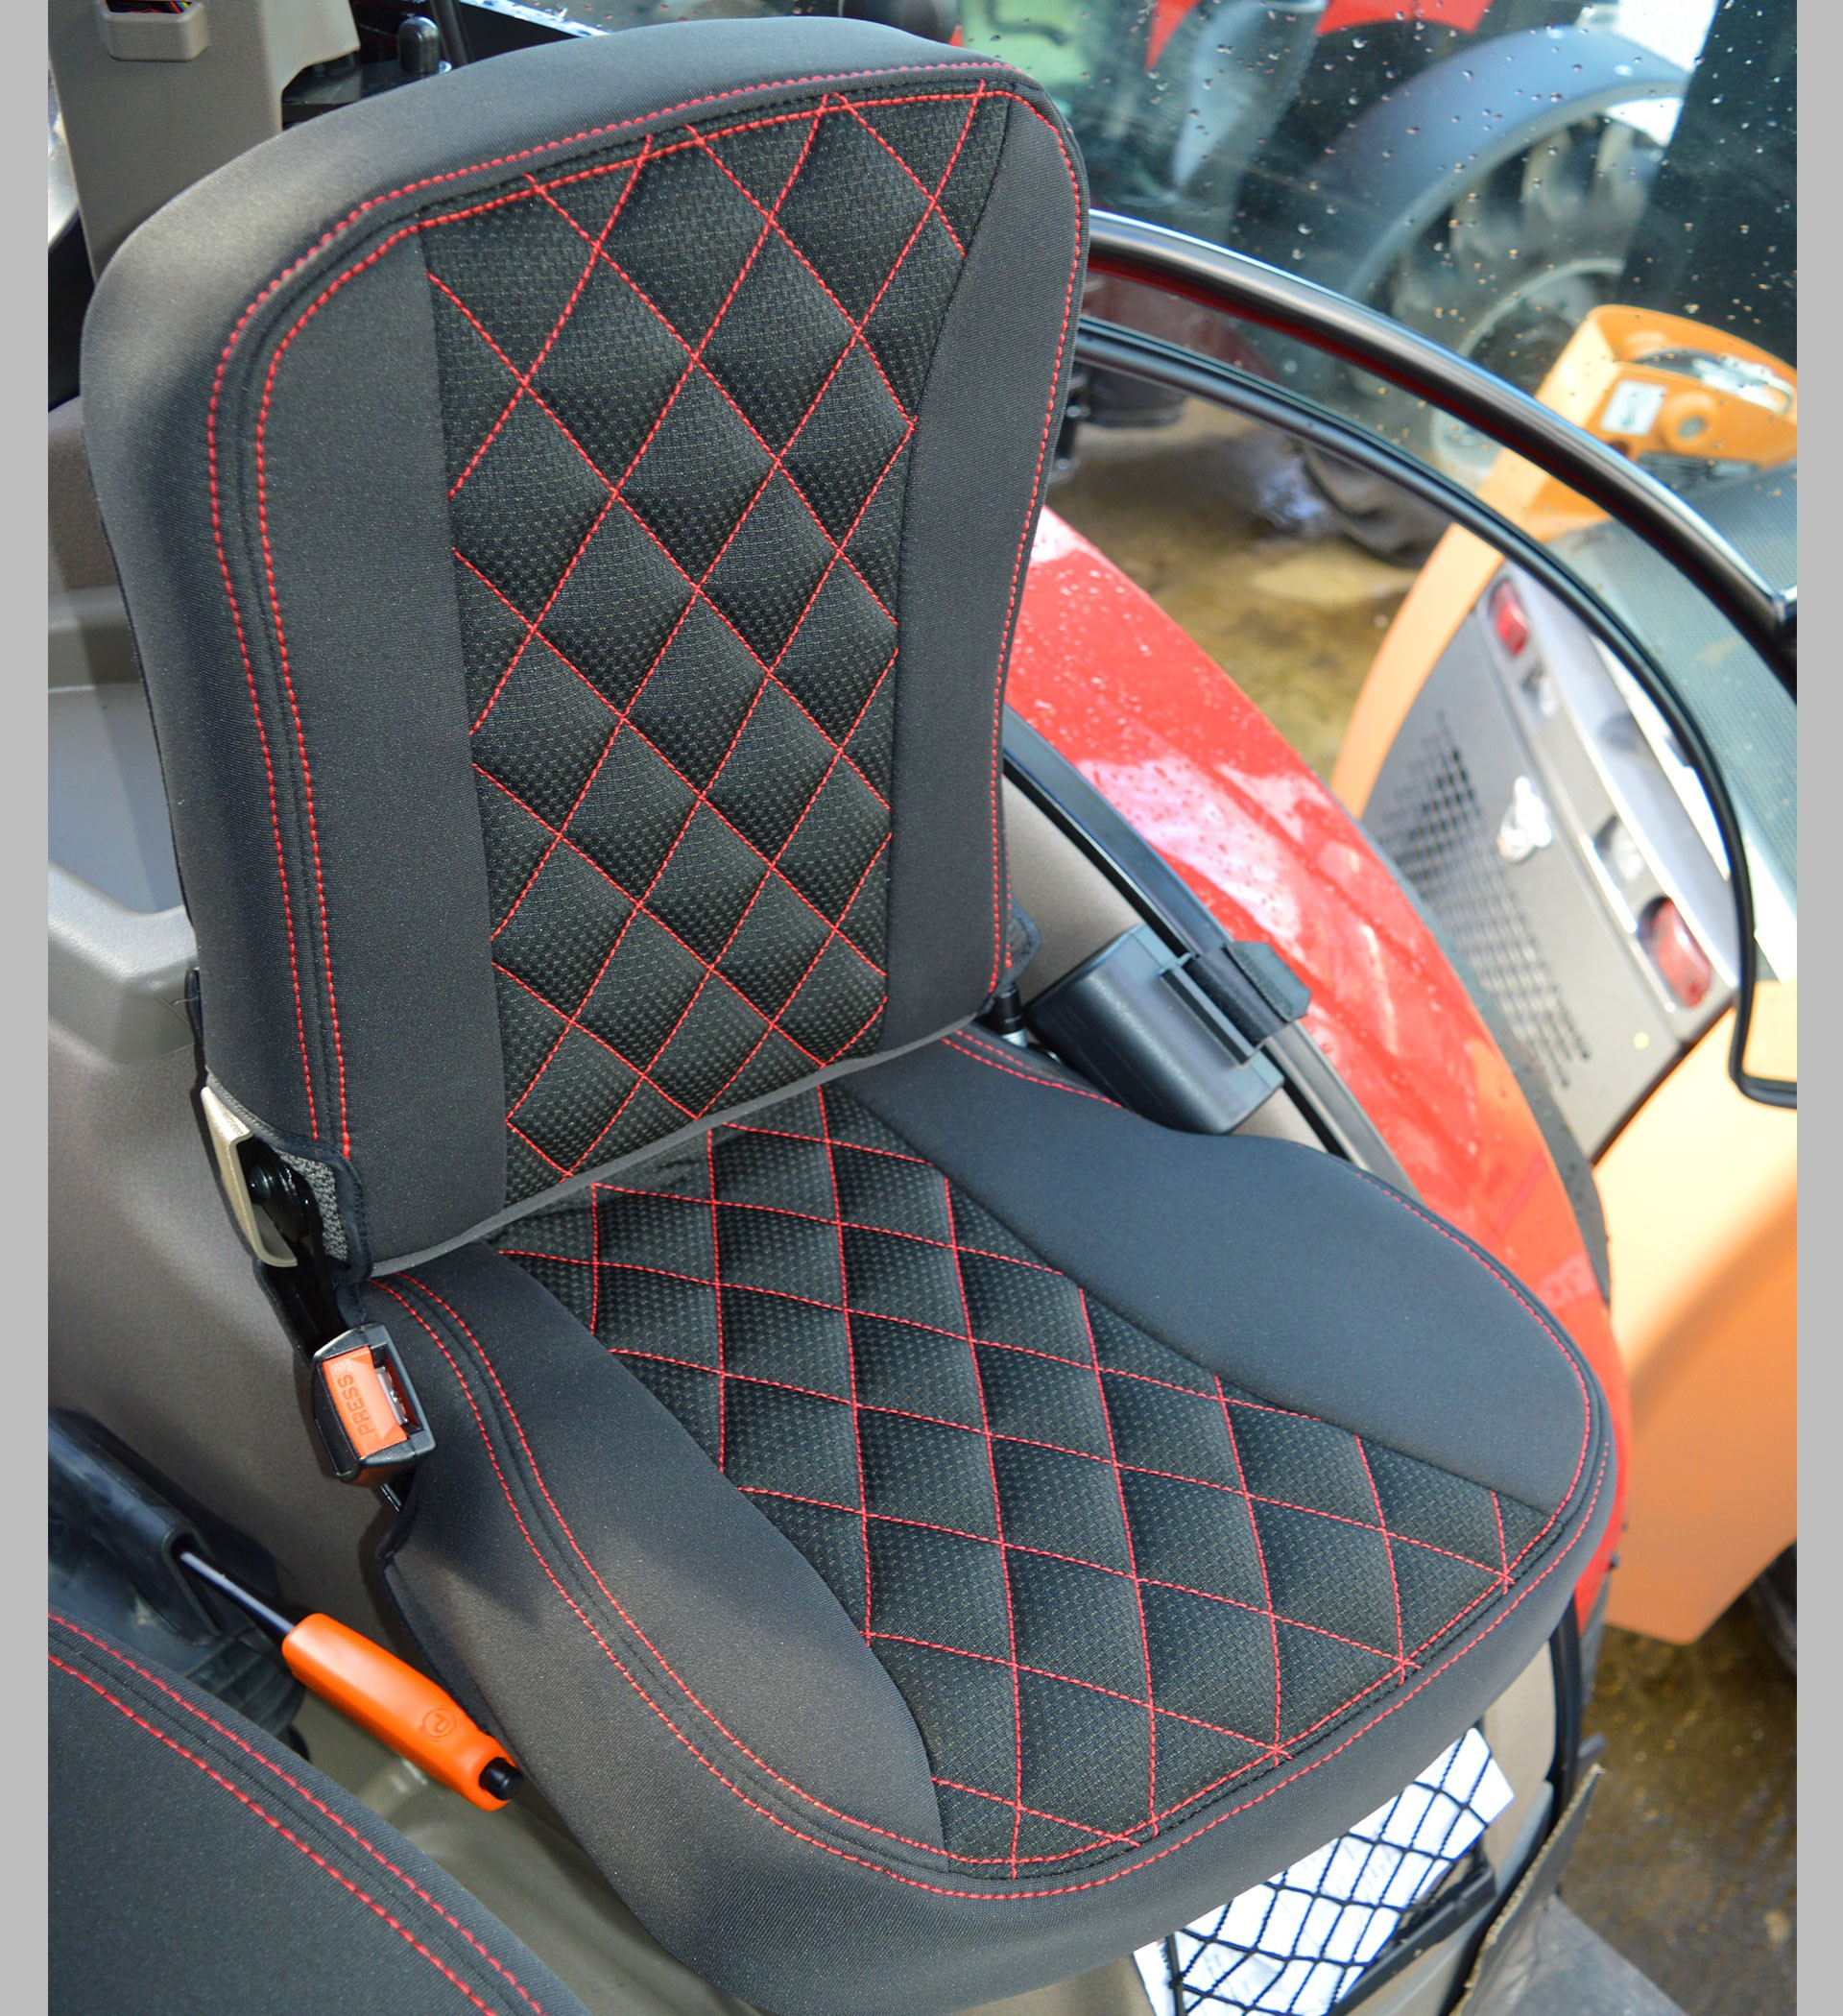 Case Ih Tractor Tailored Seat Covers For Grammer Dynamic